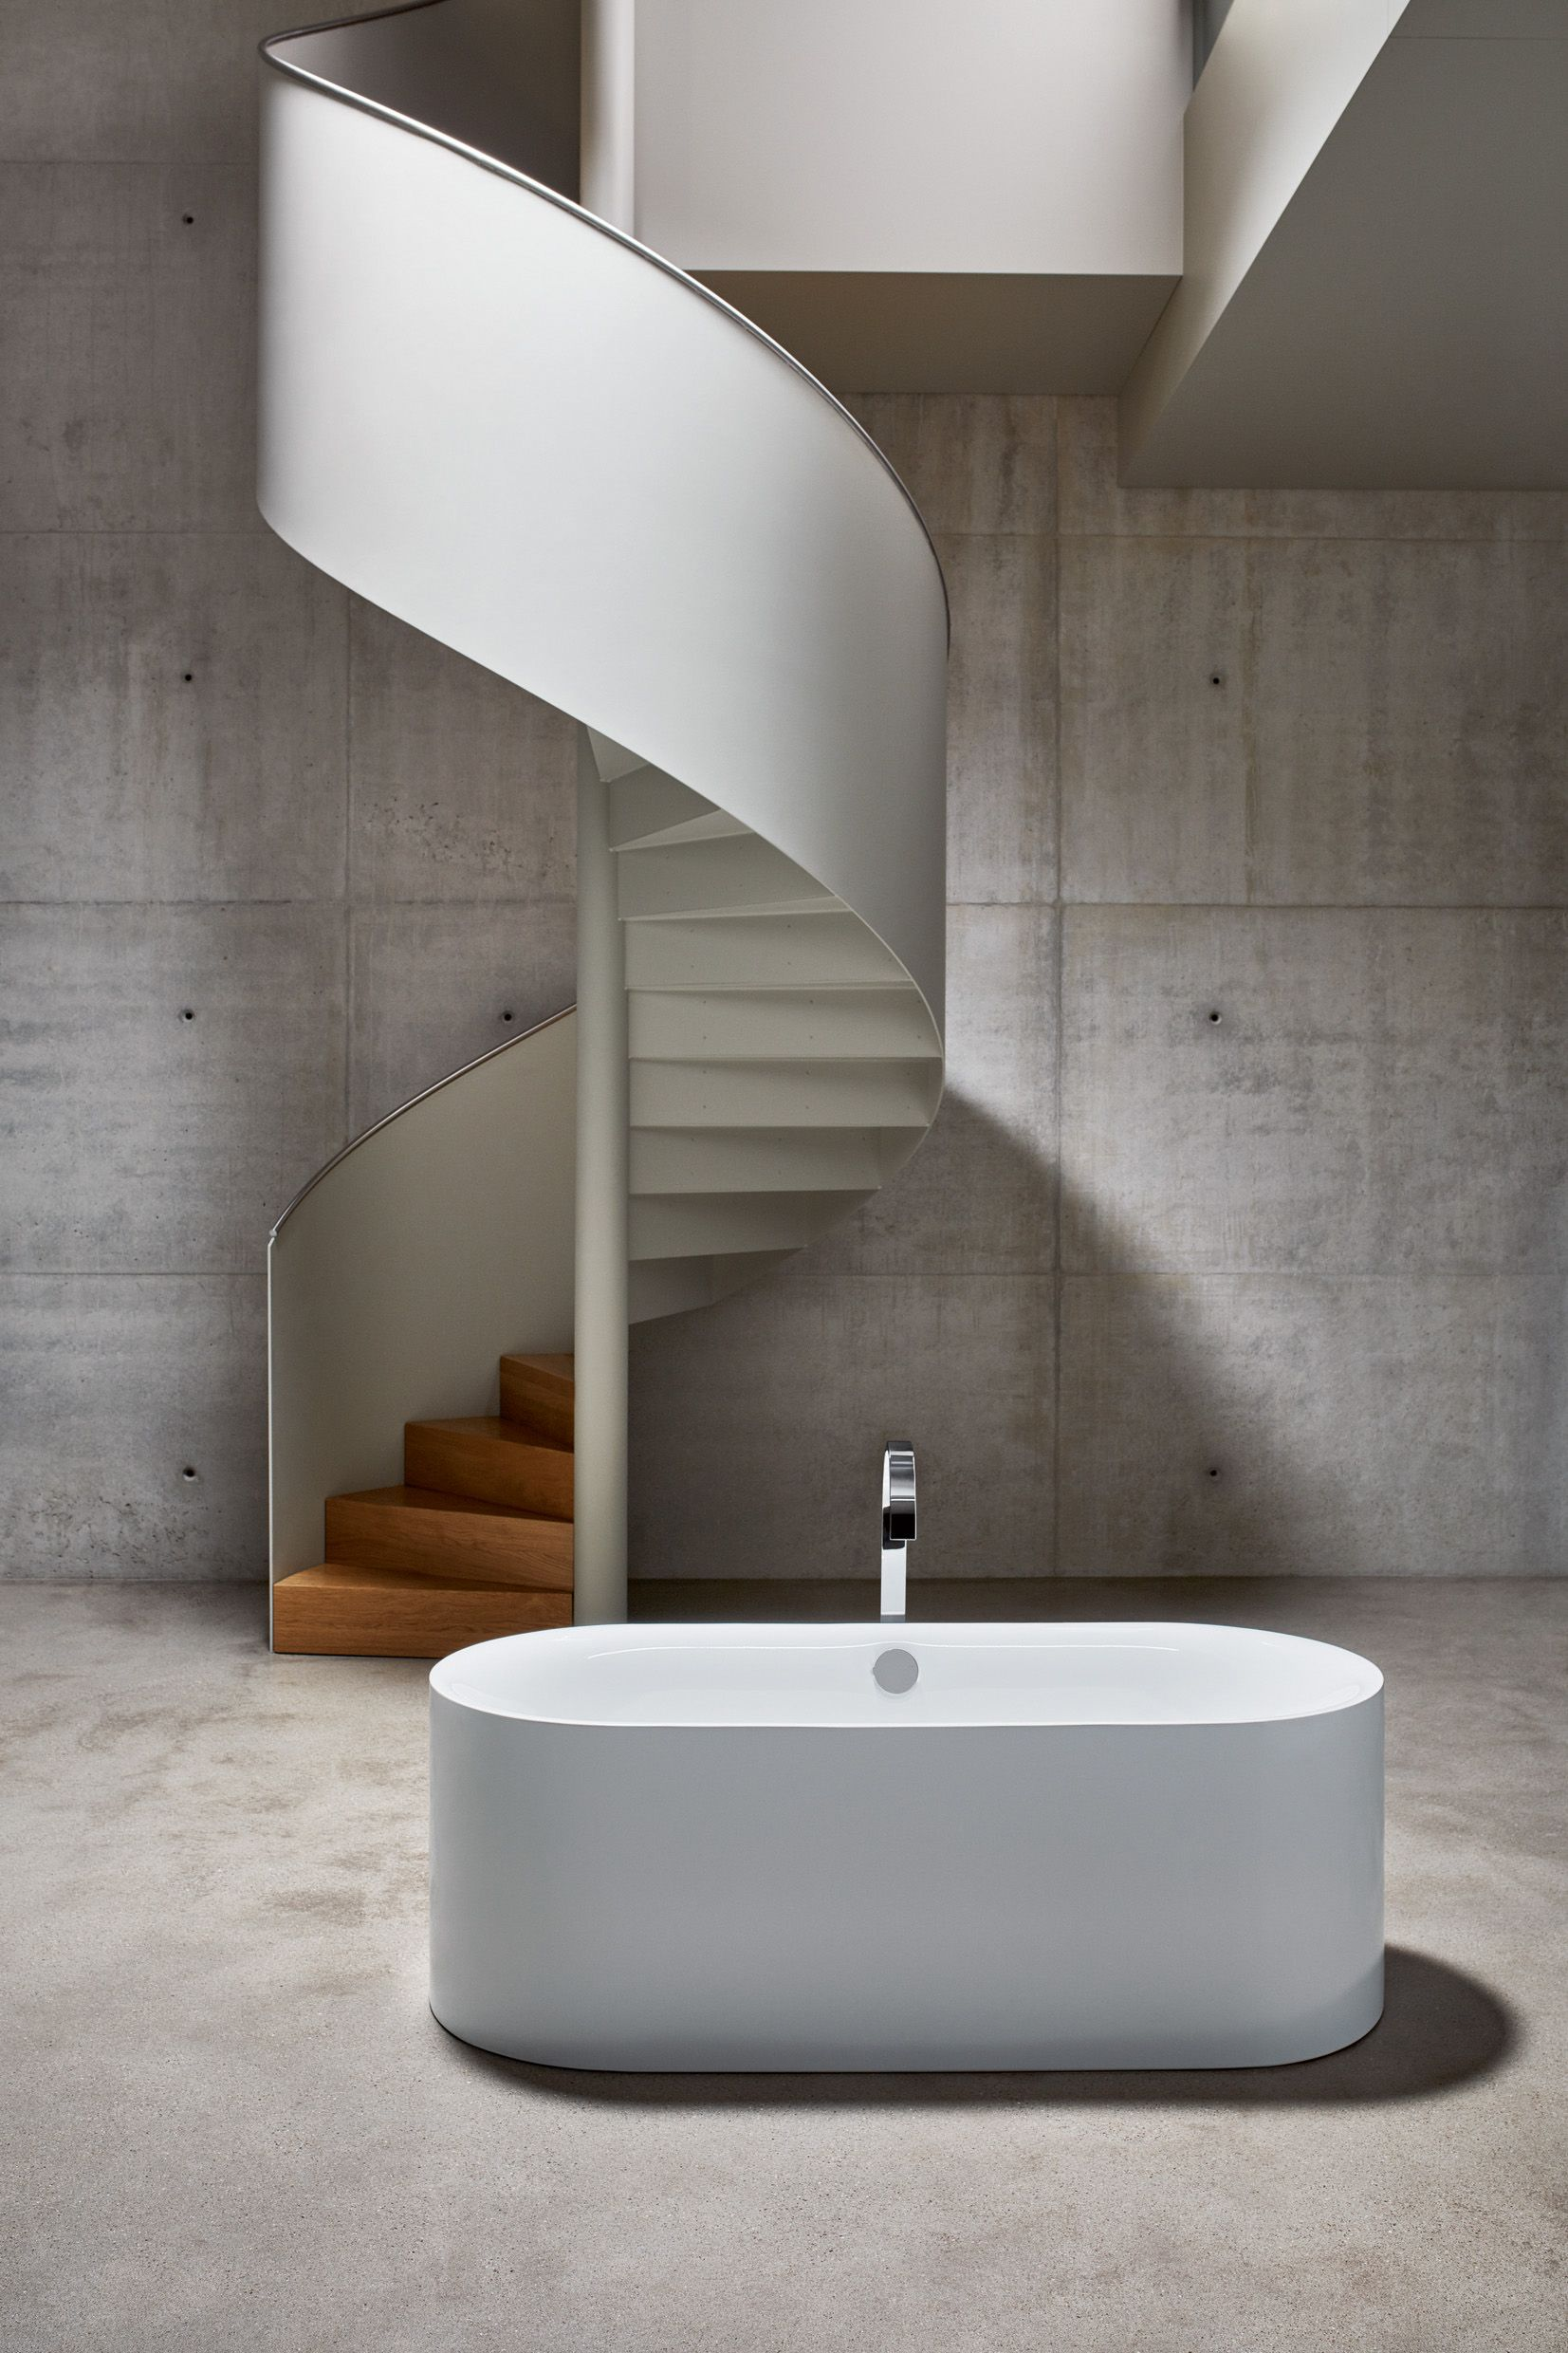 Free Standing Bettelux Oval Silhouette Has A Natural Flow To It Despite The Distinct Concise Design The Rounded Exterior Cleverly Trappen Badkamer Projecten